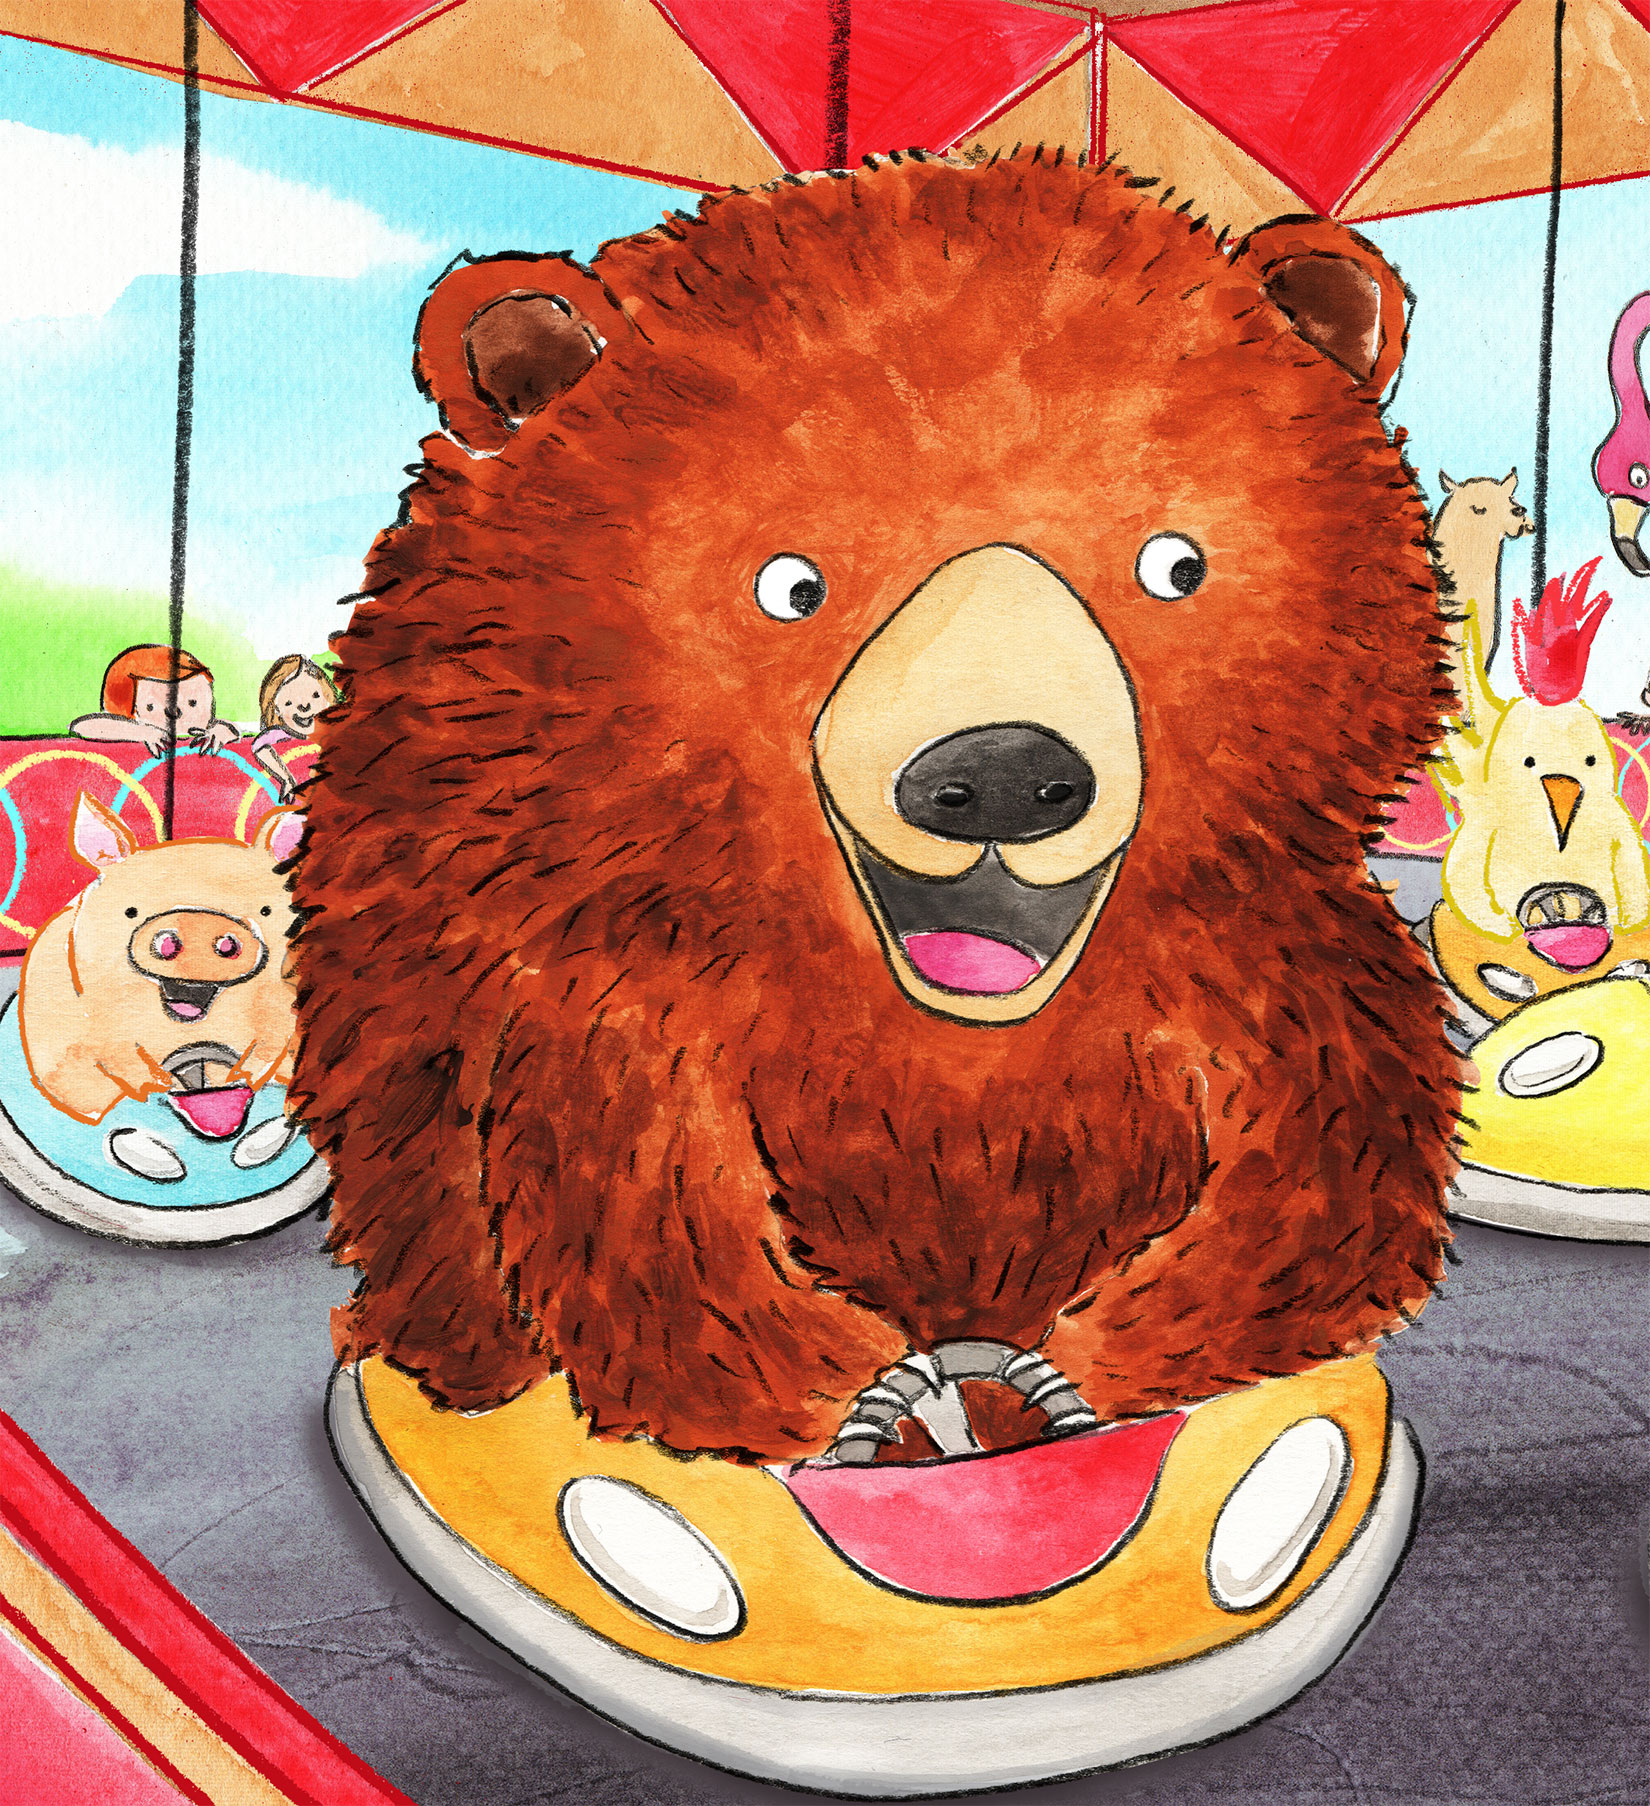 Dodgem cars, with a girl, a huge bear and other animals.